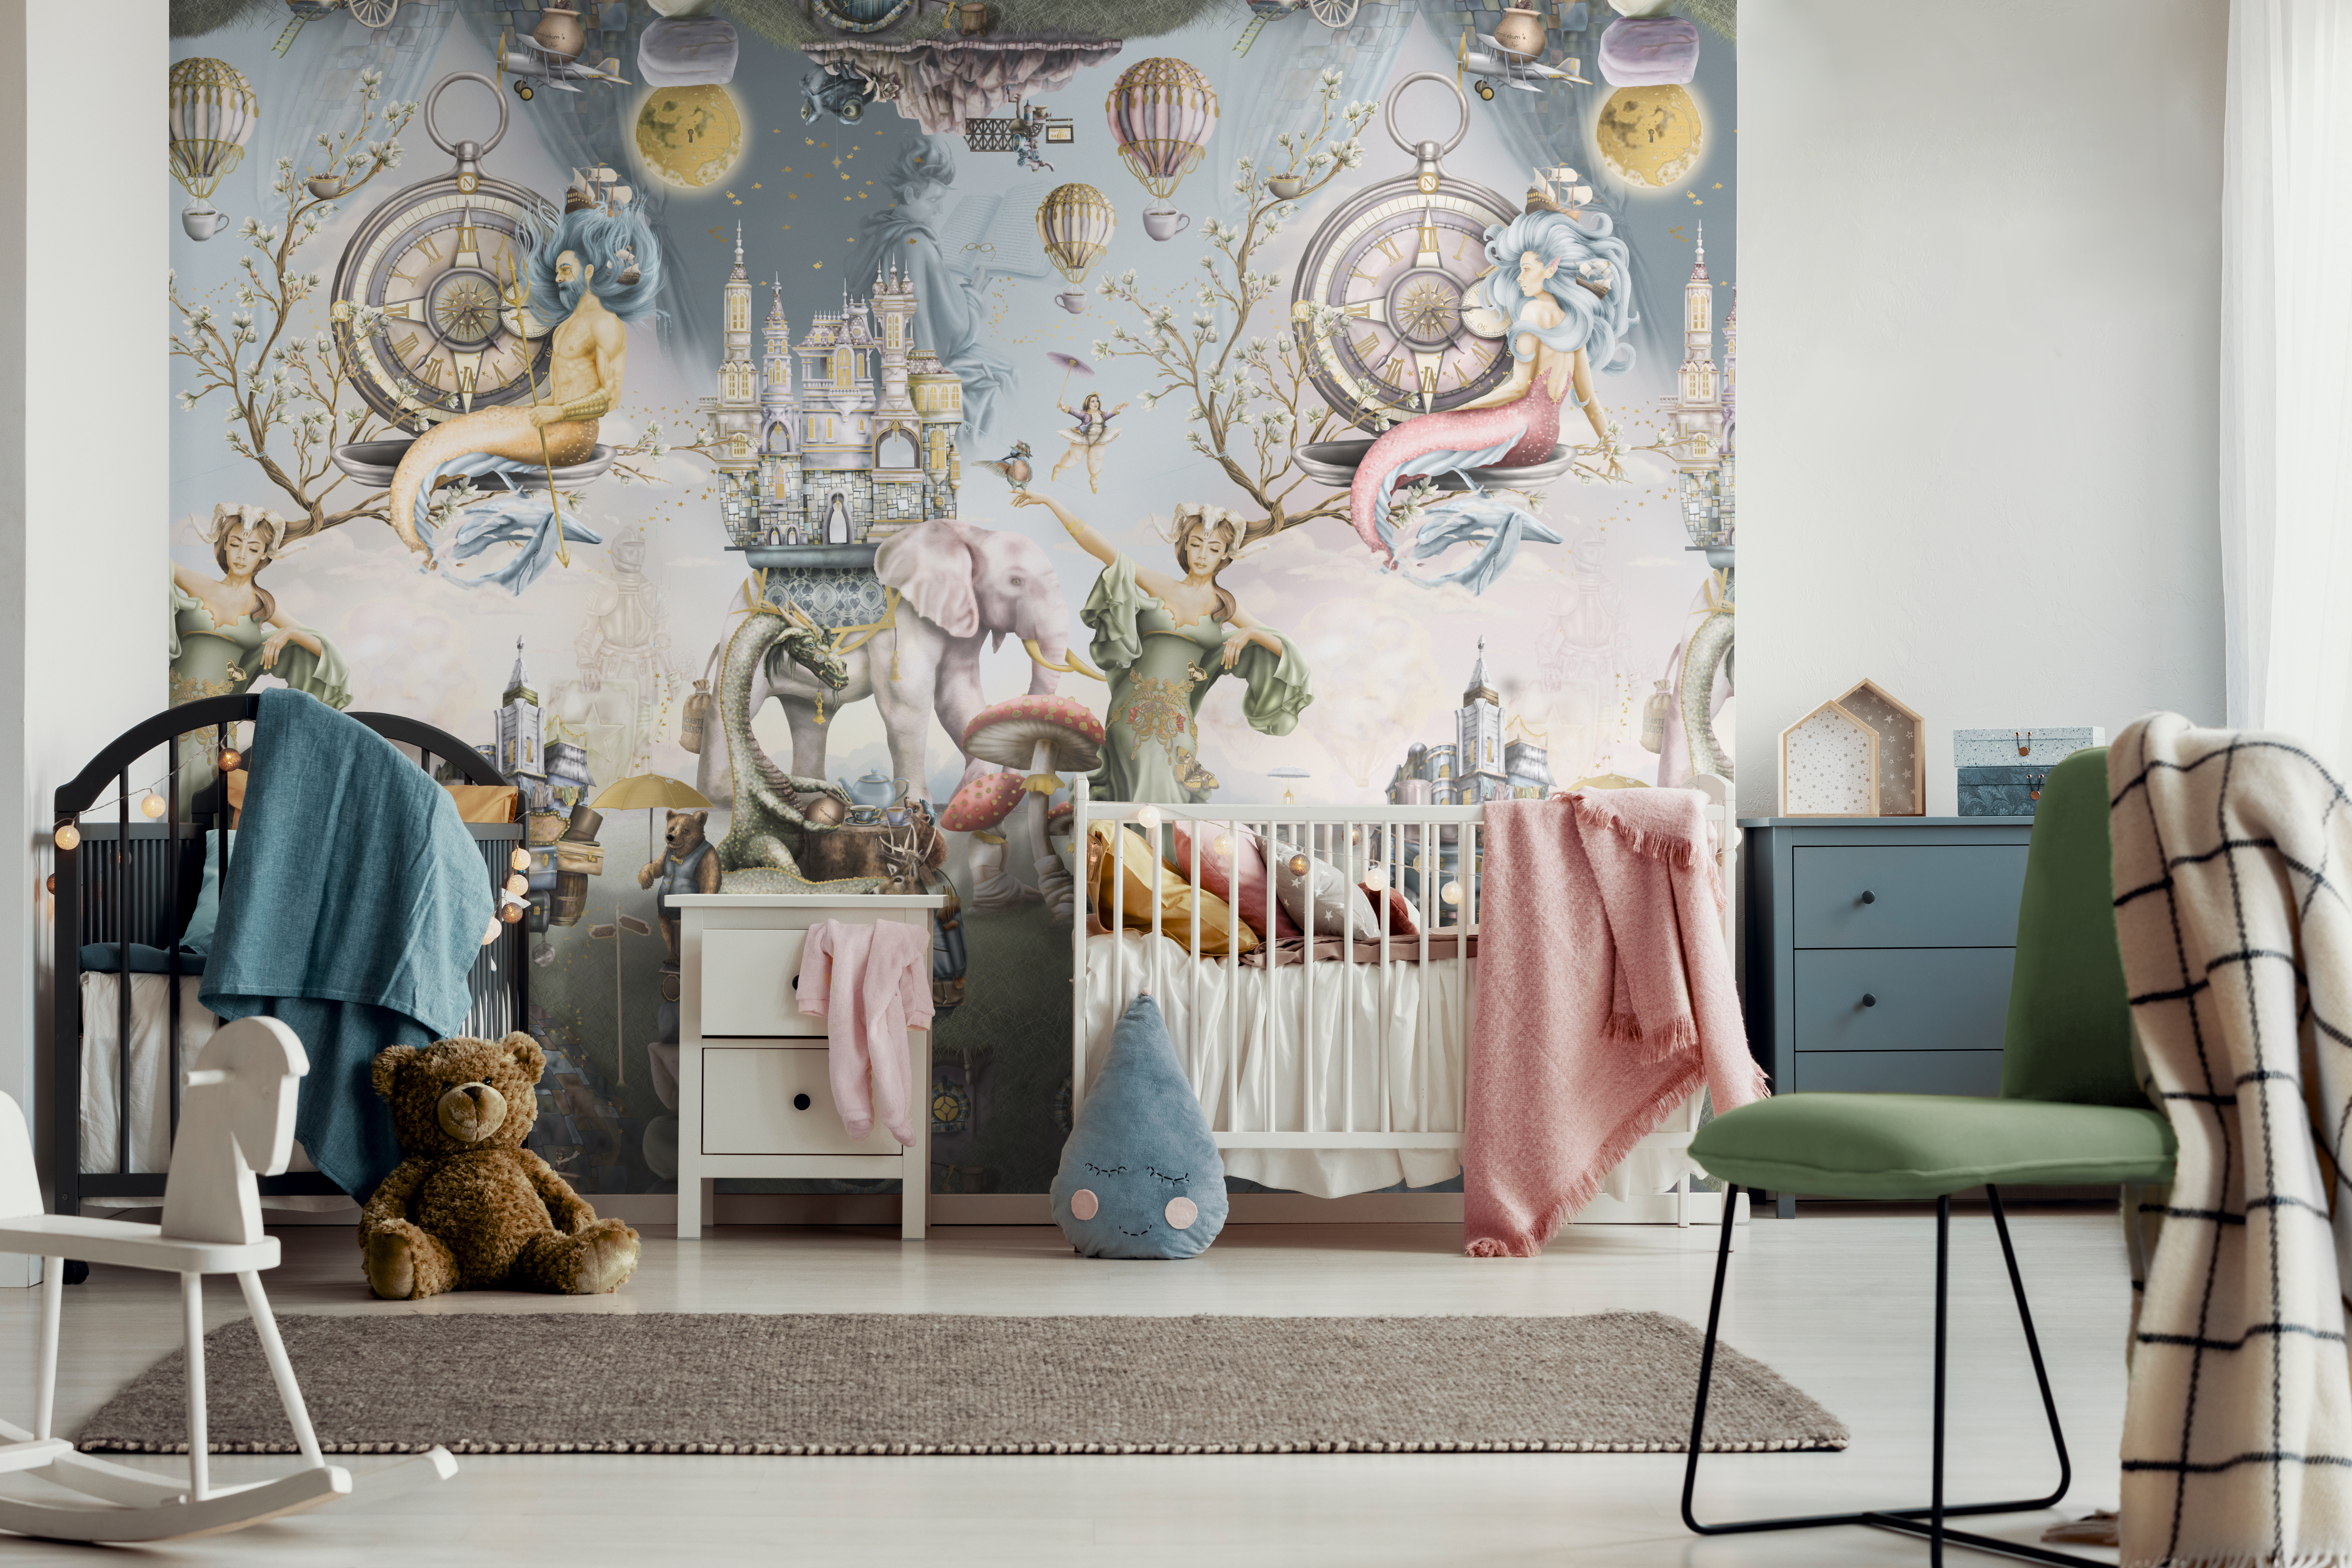 Boy and girl twins that are sharing a nursery. Fairy tale wallpaper wall mural design. Bedroom inspiration! Twin share room.